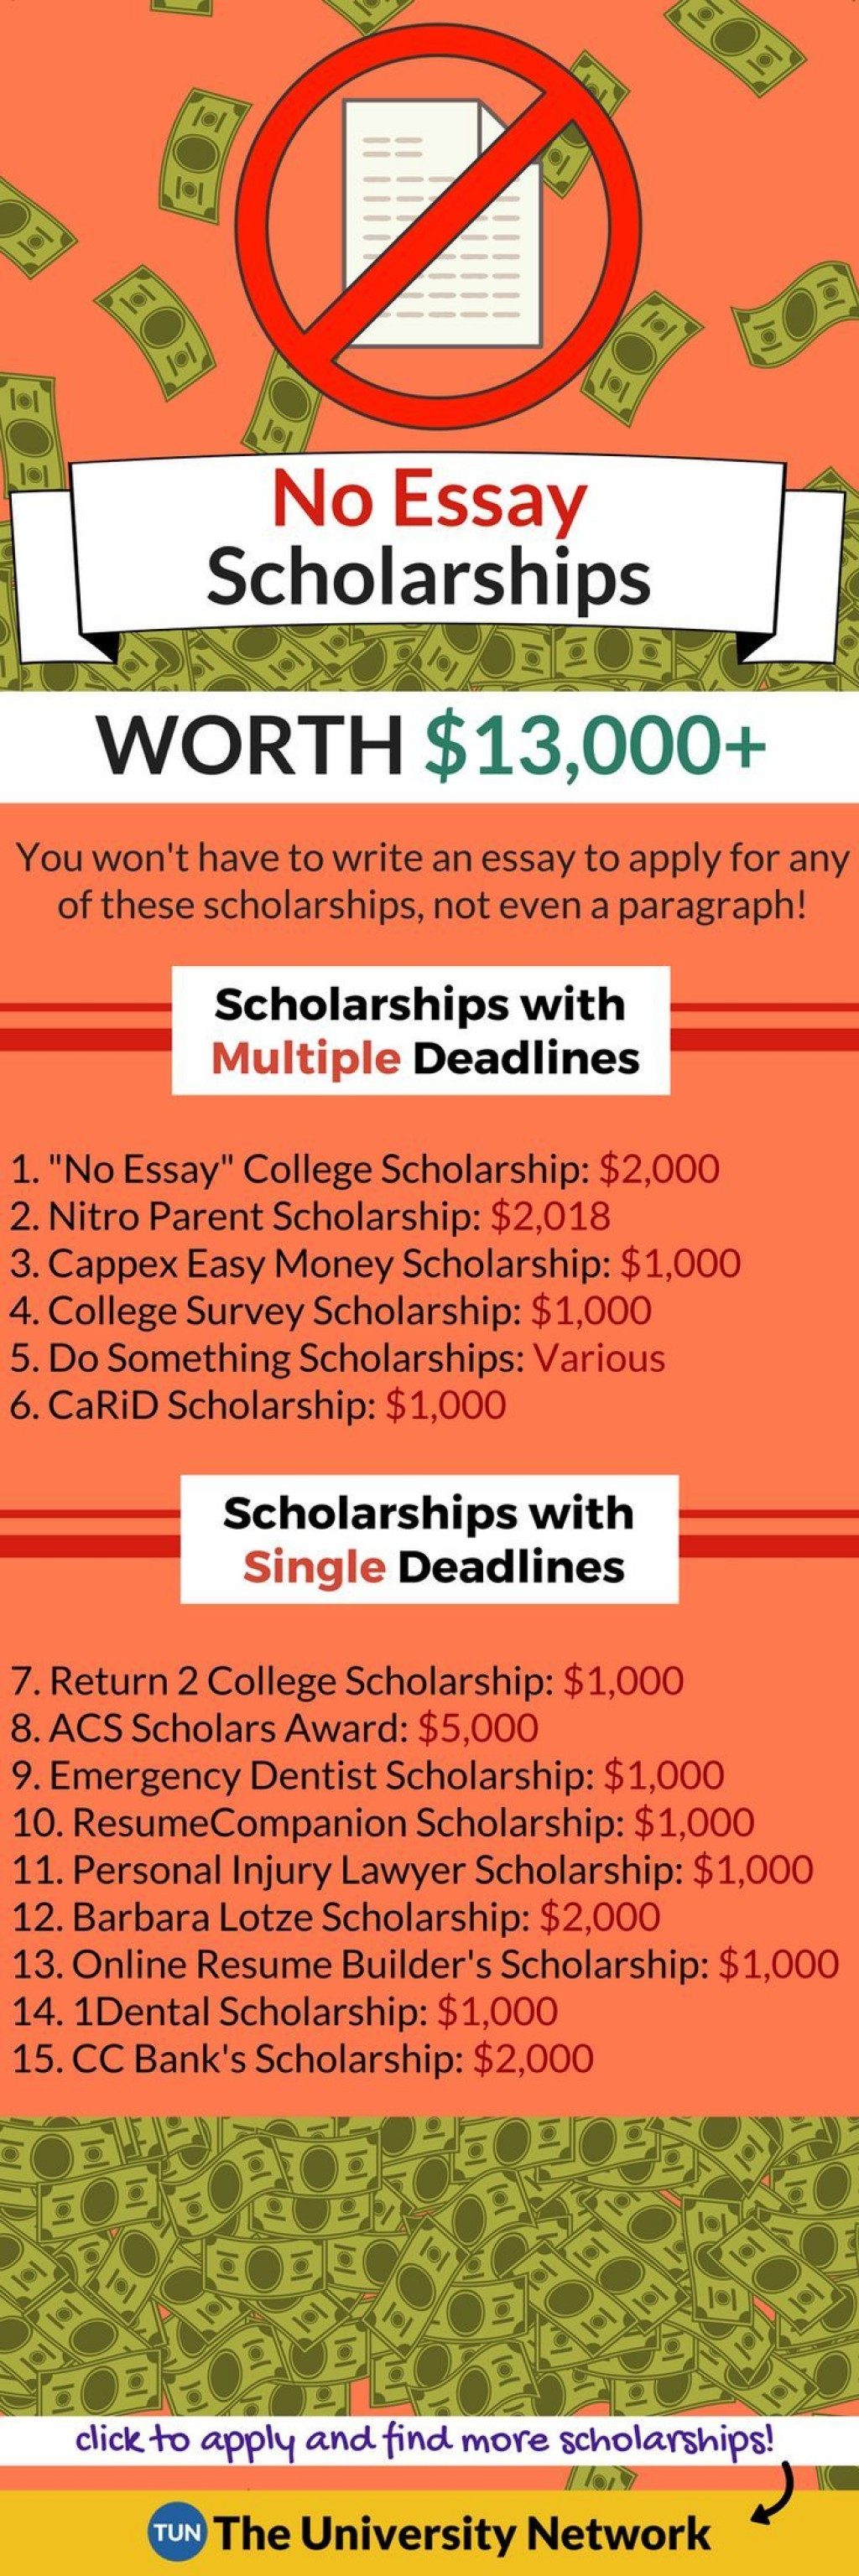 013 Essay Example No Exceptional Scholarships December 2018 For Undergraduates Large